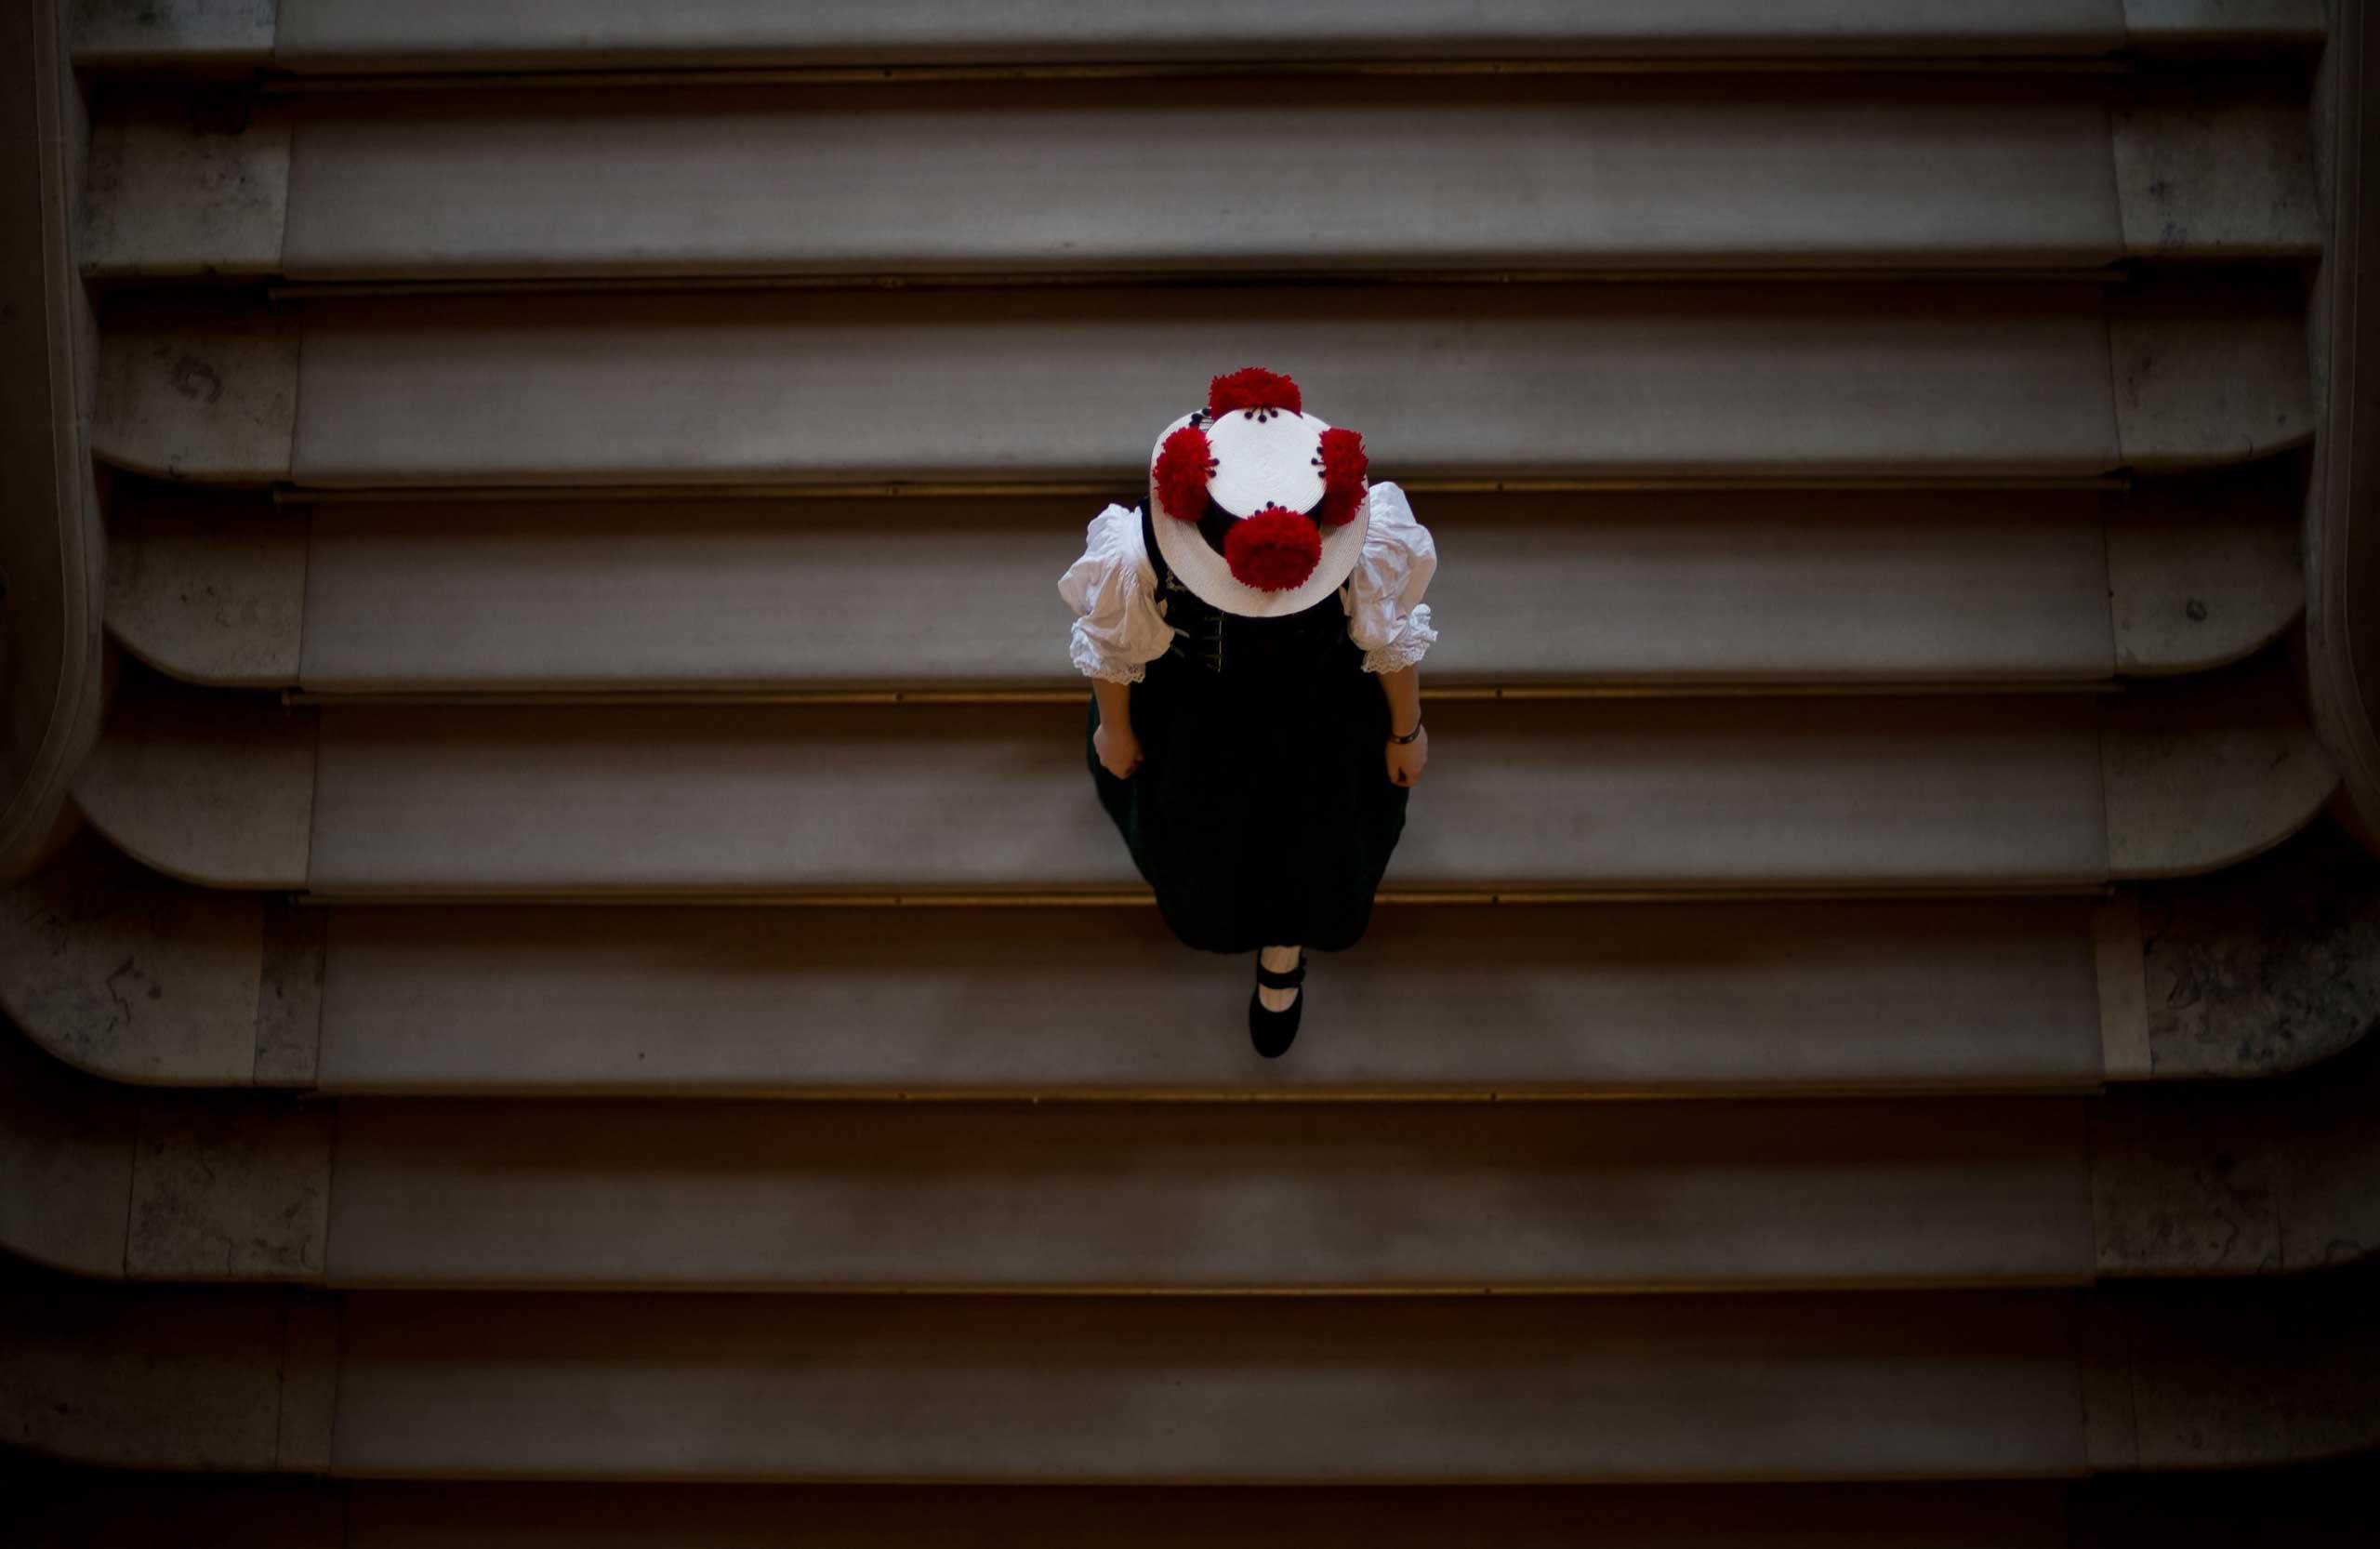 Nov. 26, 2014. A woman from the Trachten (traditional costume) Association St. Georgen in the Black Forest descends stairs during a reception held by the state government in Stuttgart, Germany,